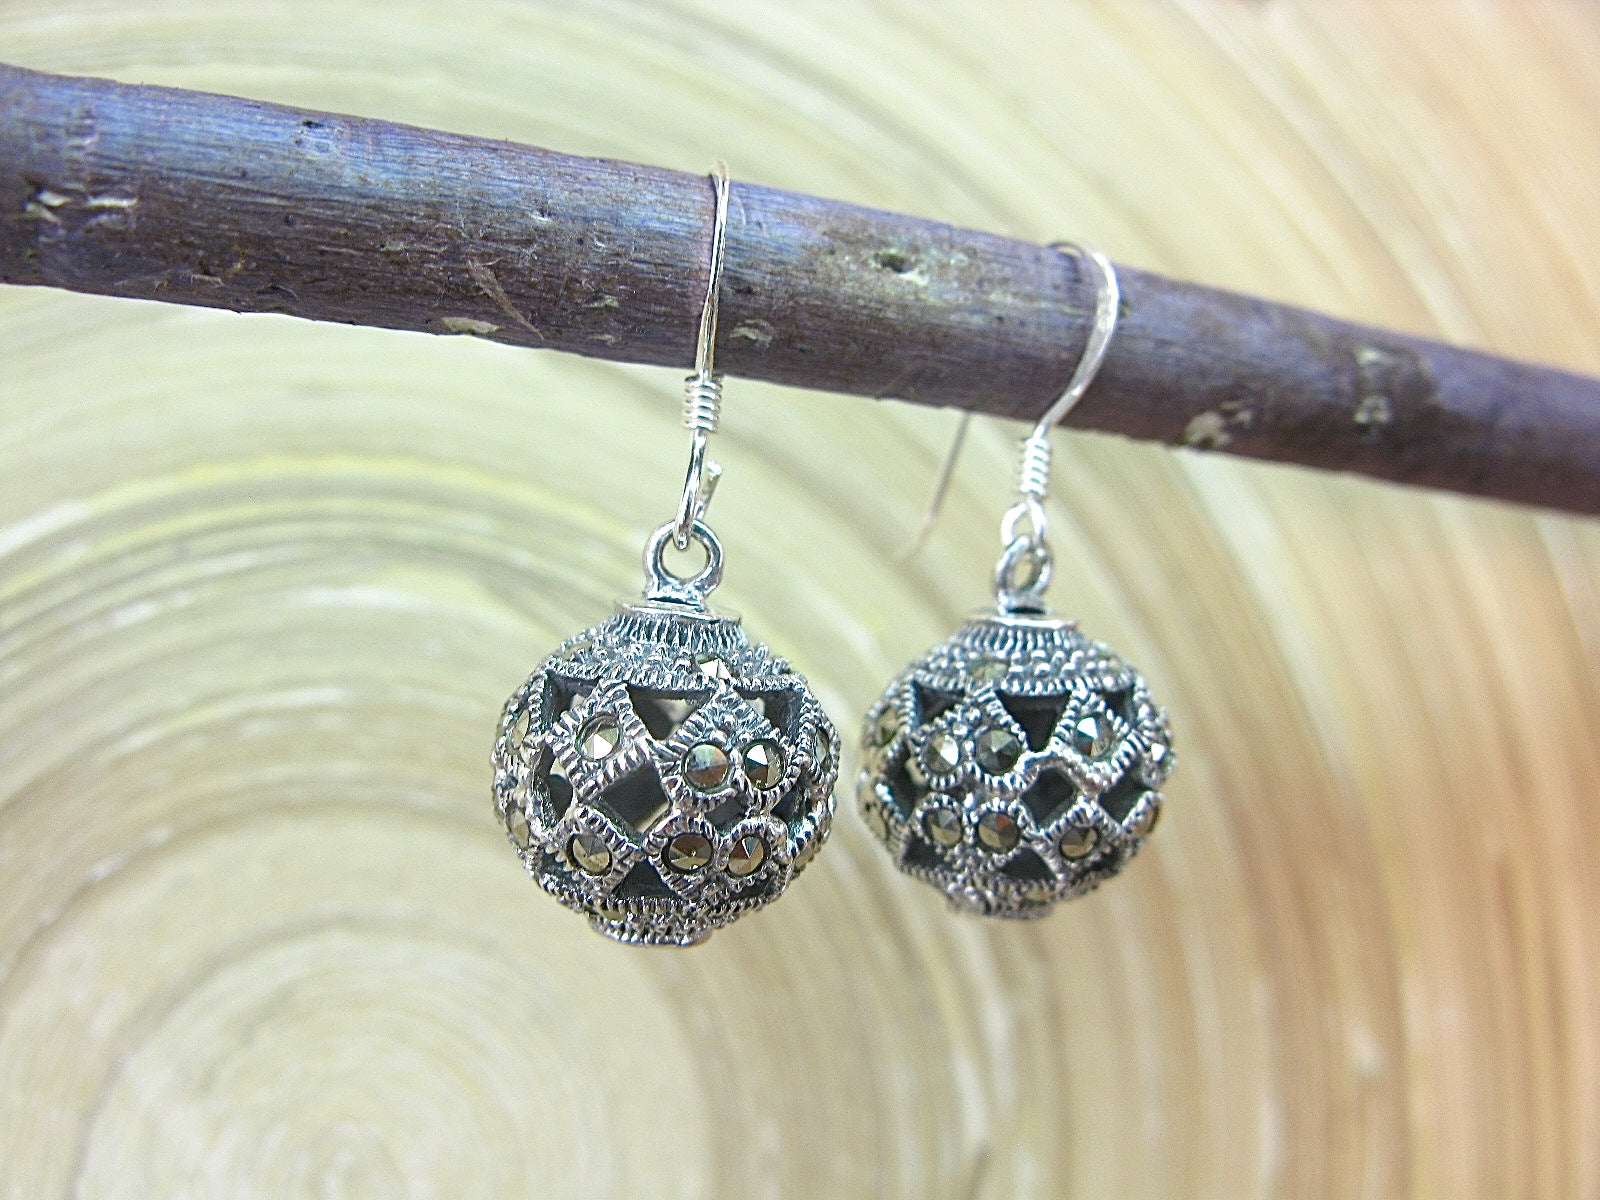 Ball Marcasite Filigree Earrings in 925 Sterling Silver